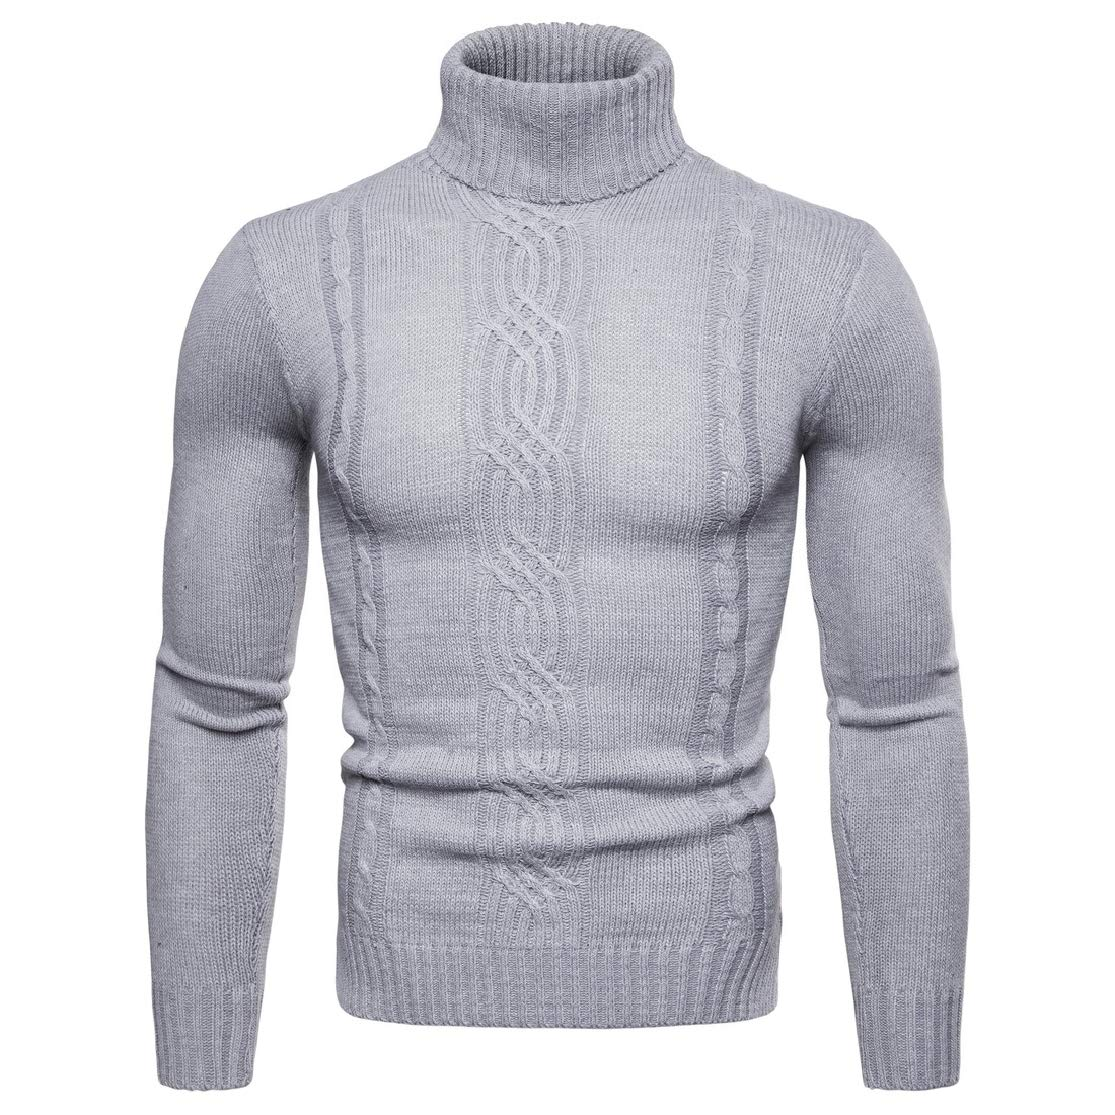 Colourful Mens Trim-Fit Long Sleeve Mock Neck Solid Pullover Knitting Sweater